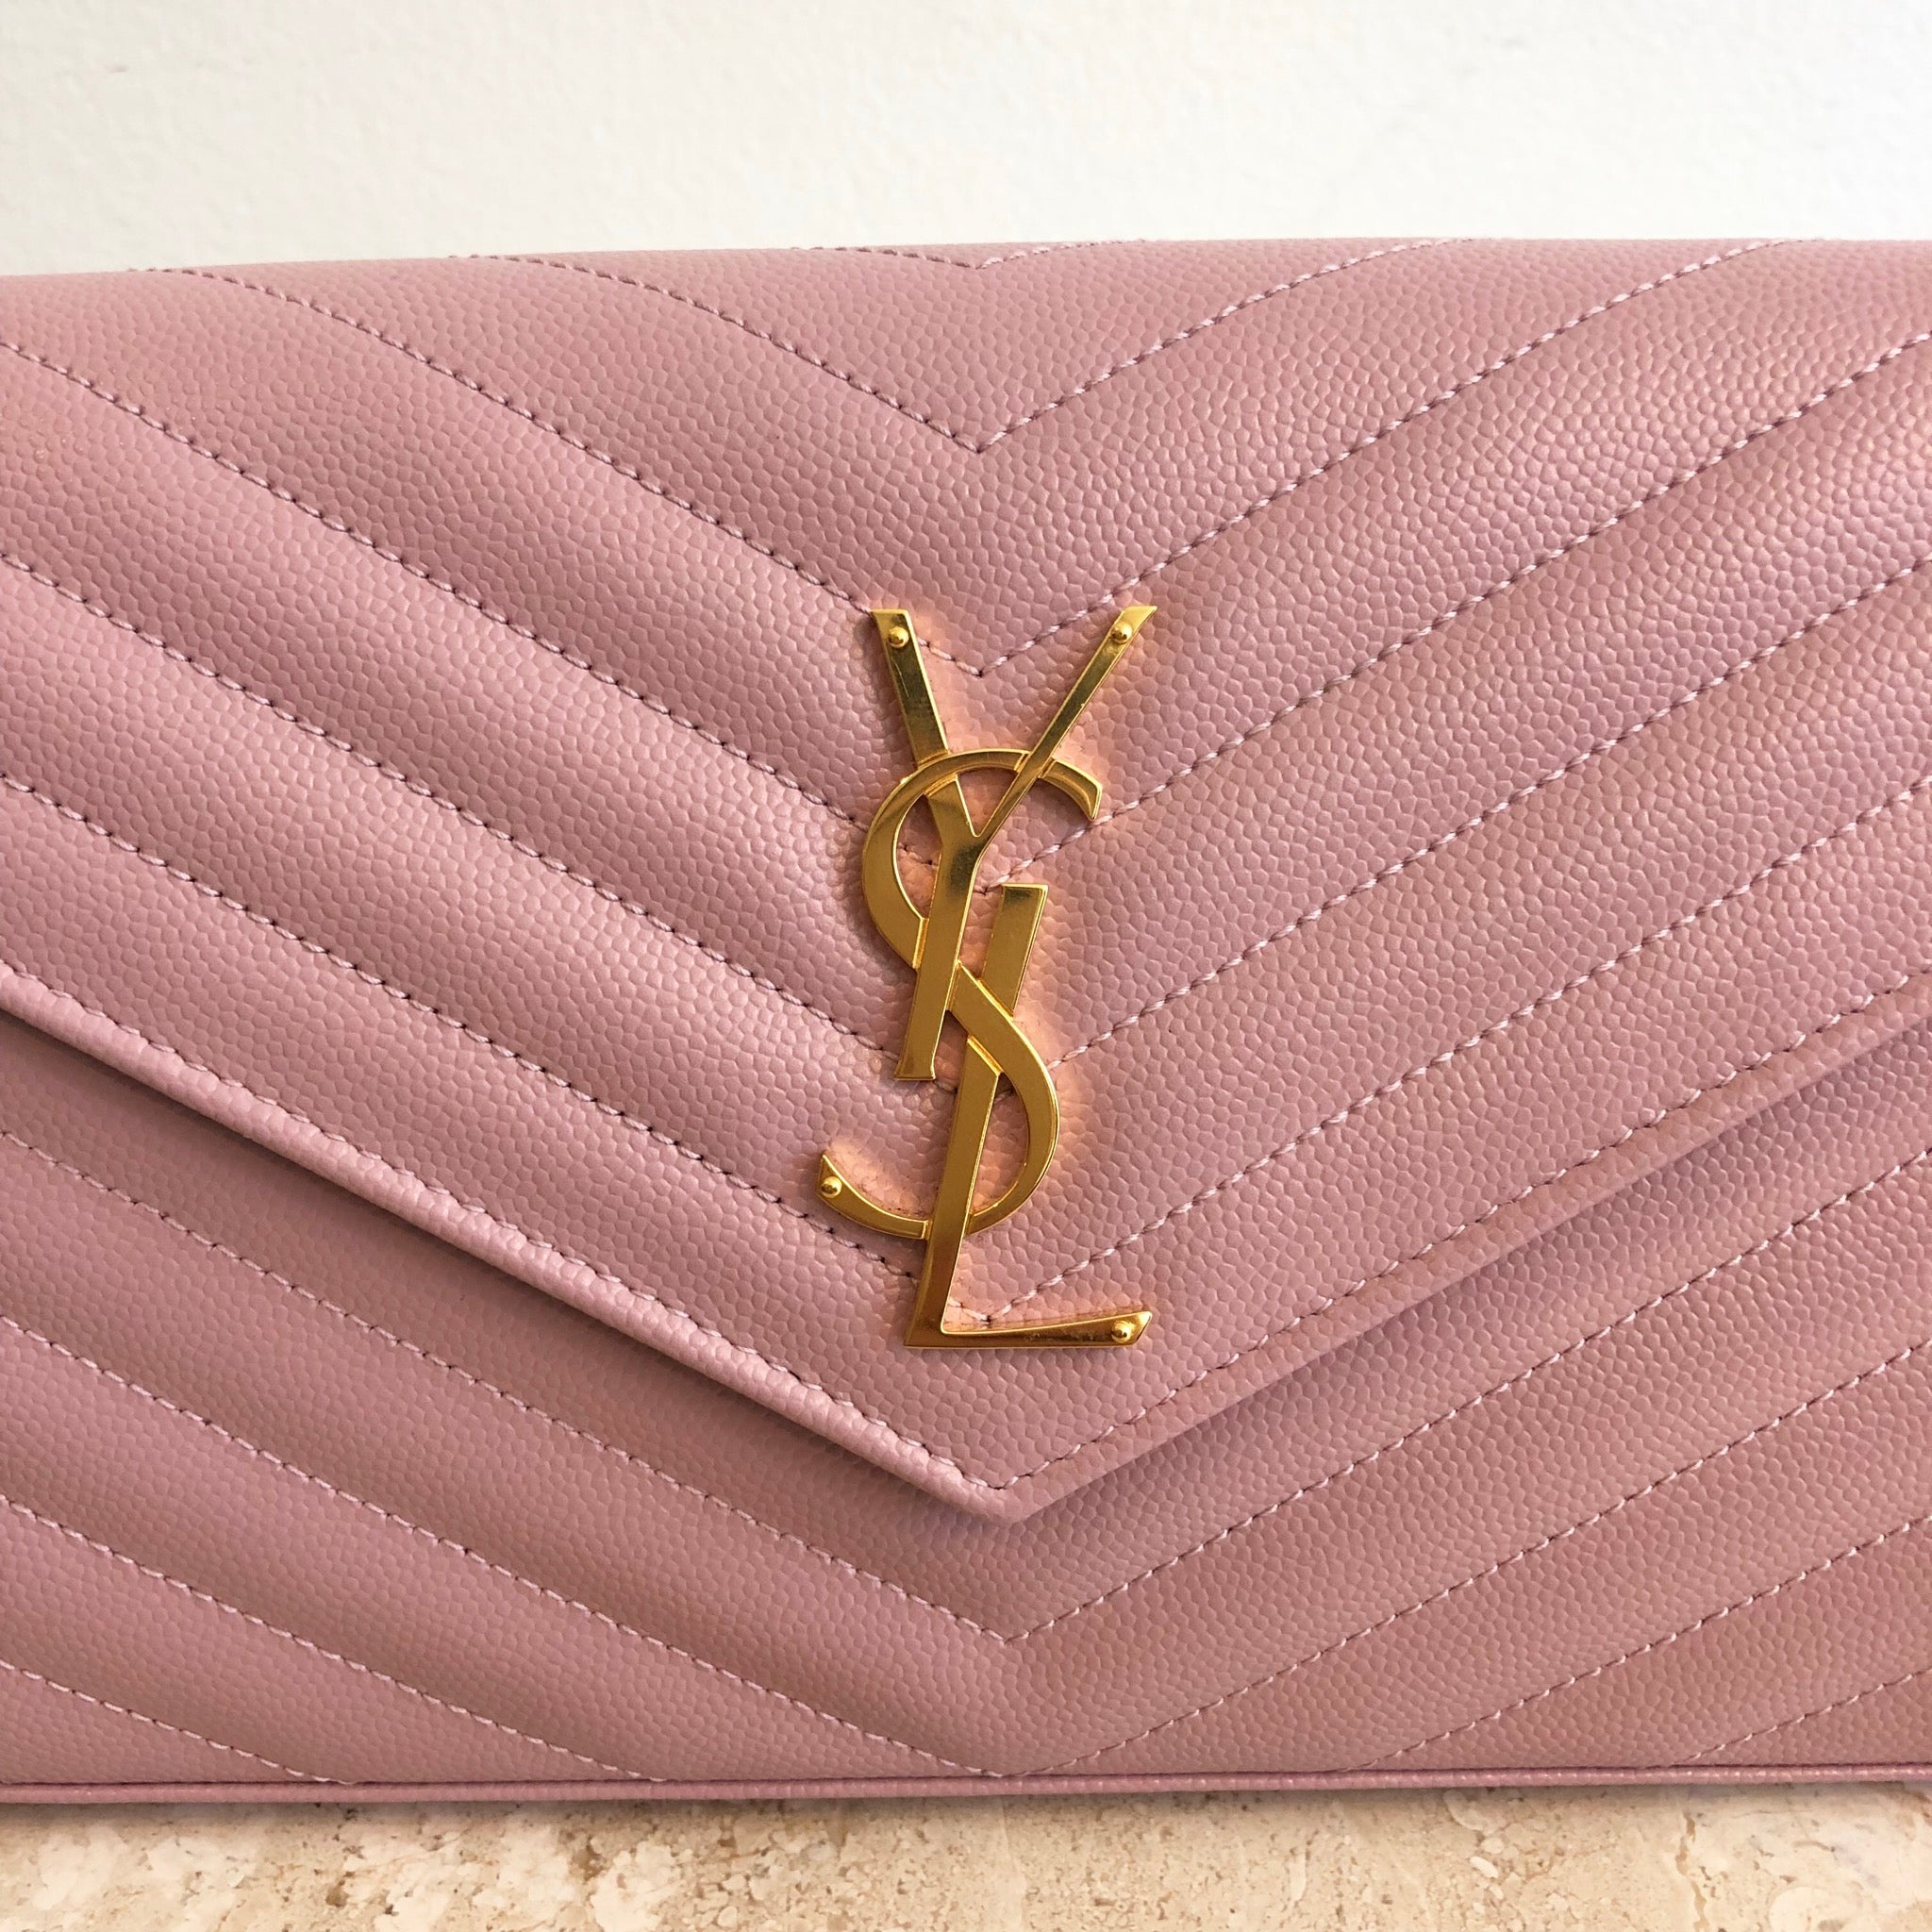 Authwntic YVES SAINT LAURENT Small Pink Grain De Poudre